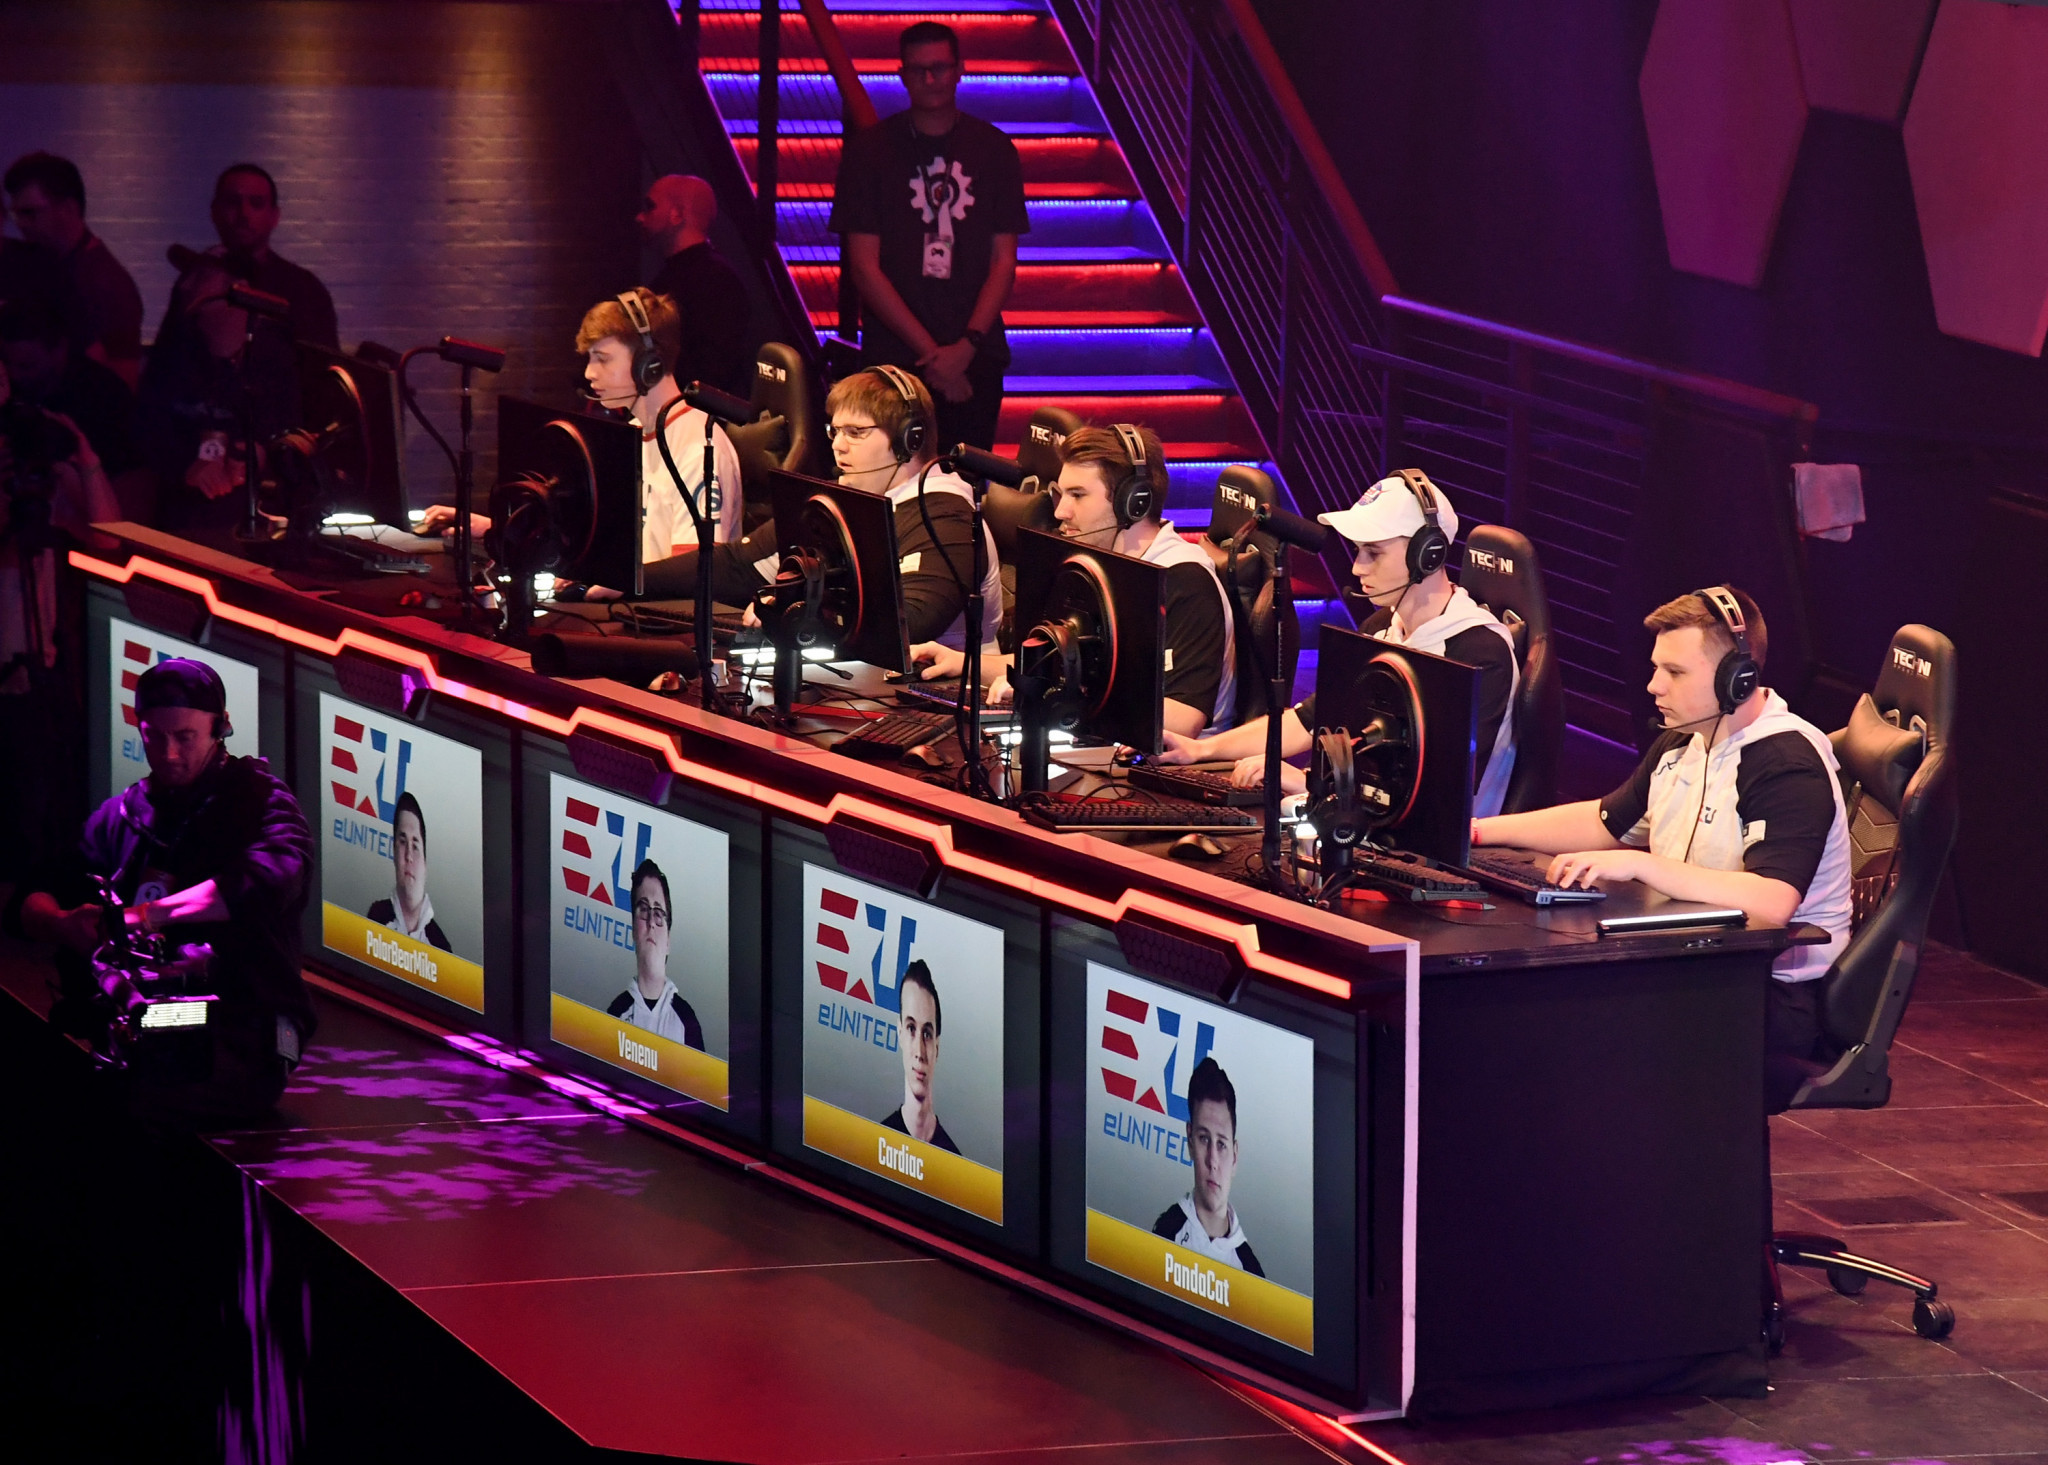 Germany, South Korea, China, Russia, Italy and South Africa all recognise esports as an official sport ©Getty Images